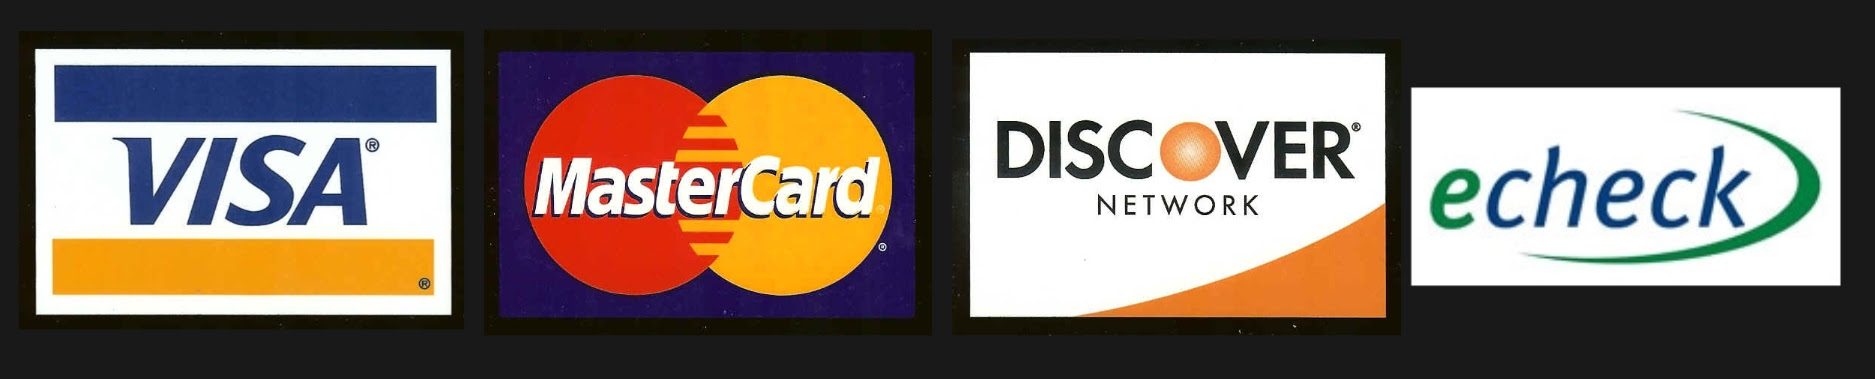 all credit cards accepted logo. All major credit cards are